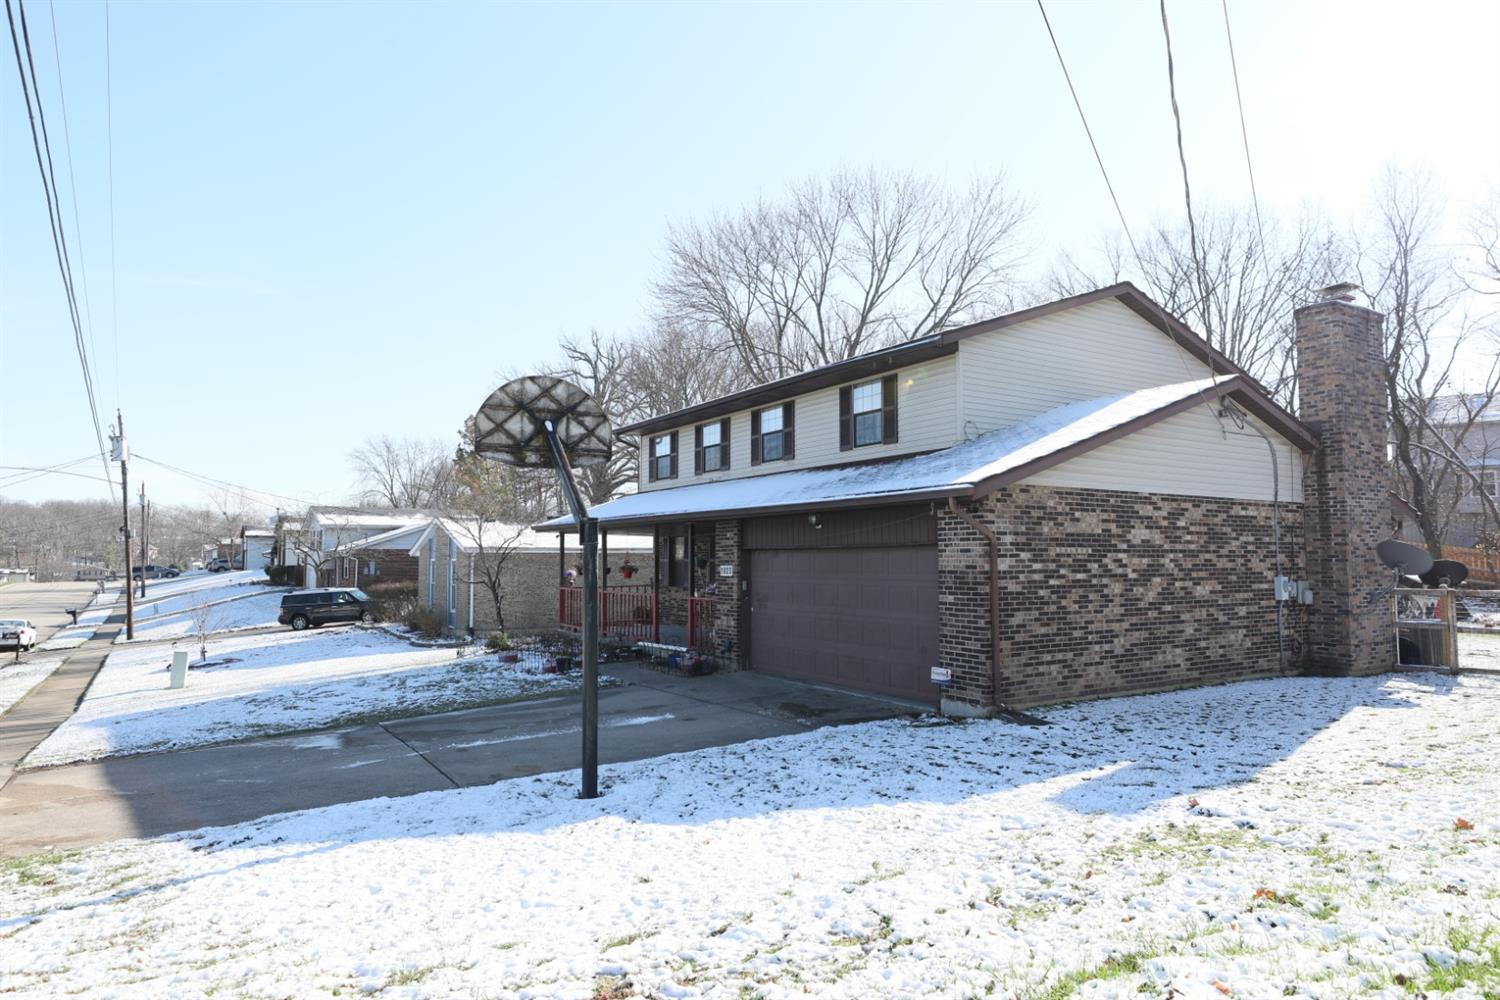 Property for sale at 1823 Doral Dr, Fairfield,  Ohio 45014